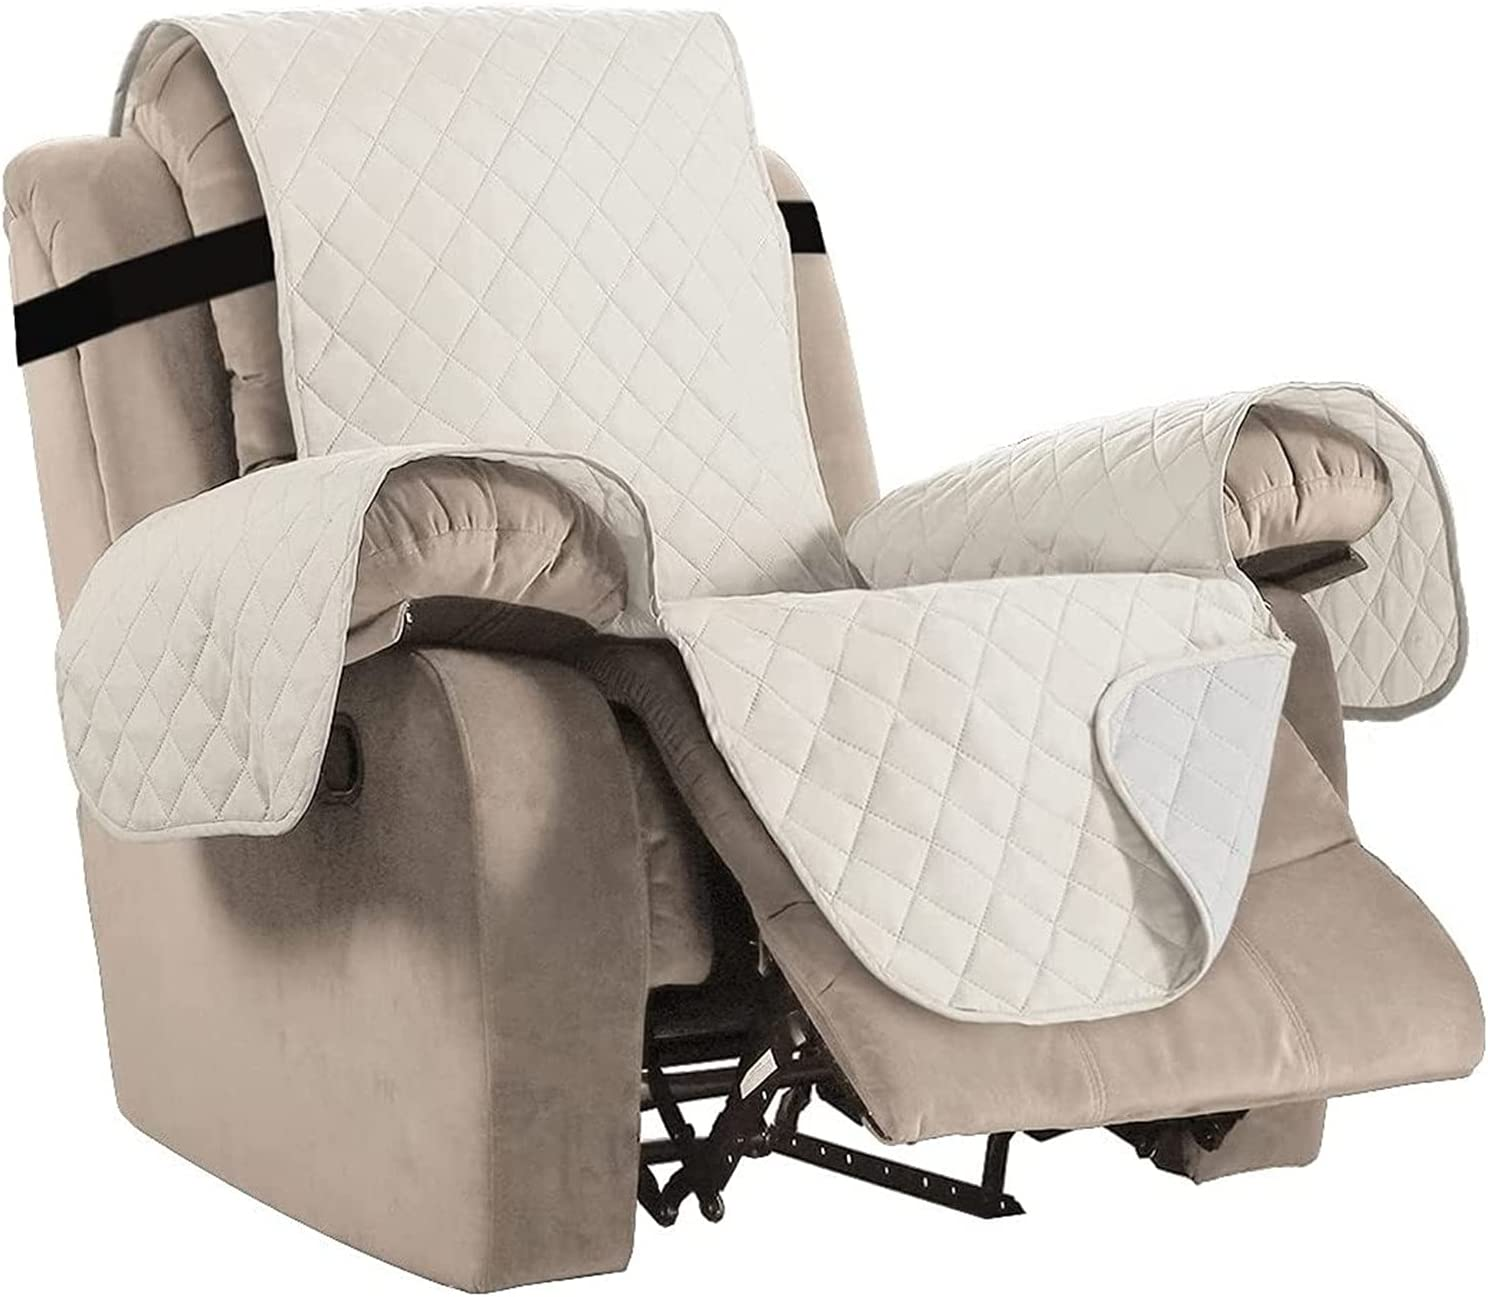 Japan Maker New products, world's highest quality popular! New Reversible Recliner Chair Waterproof Cover